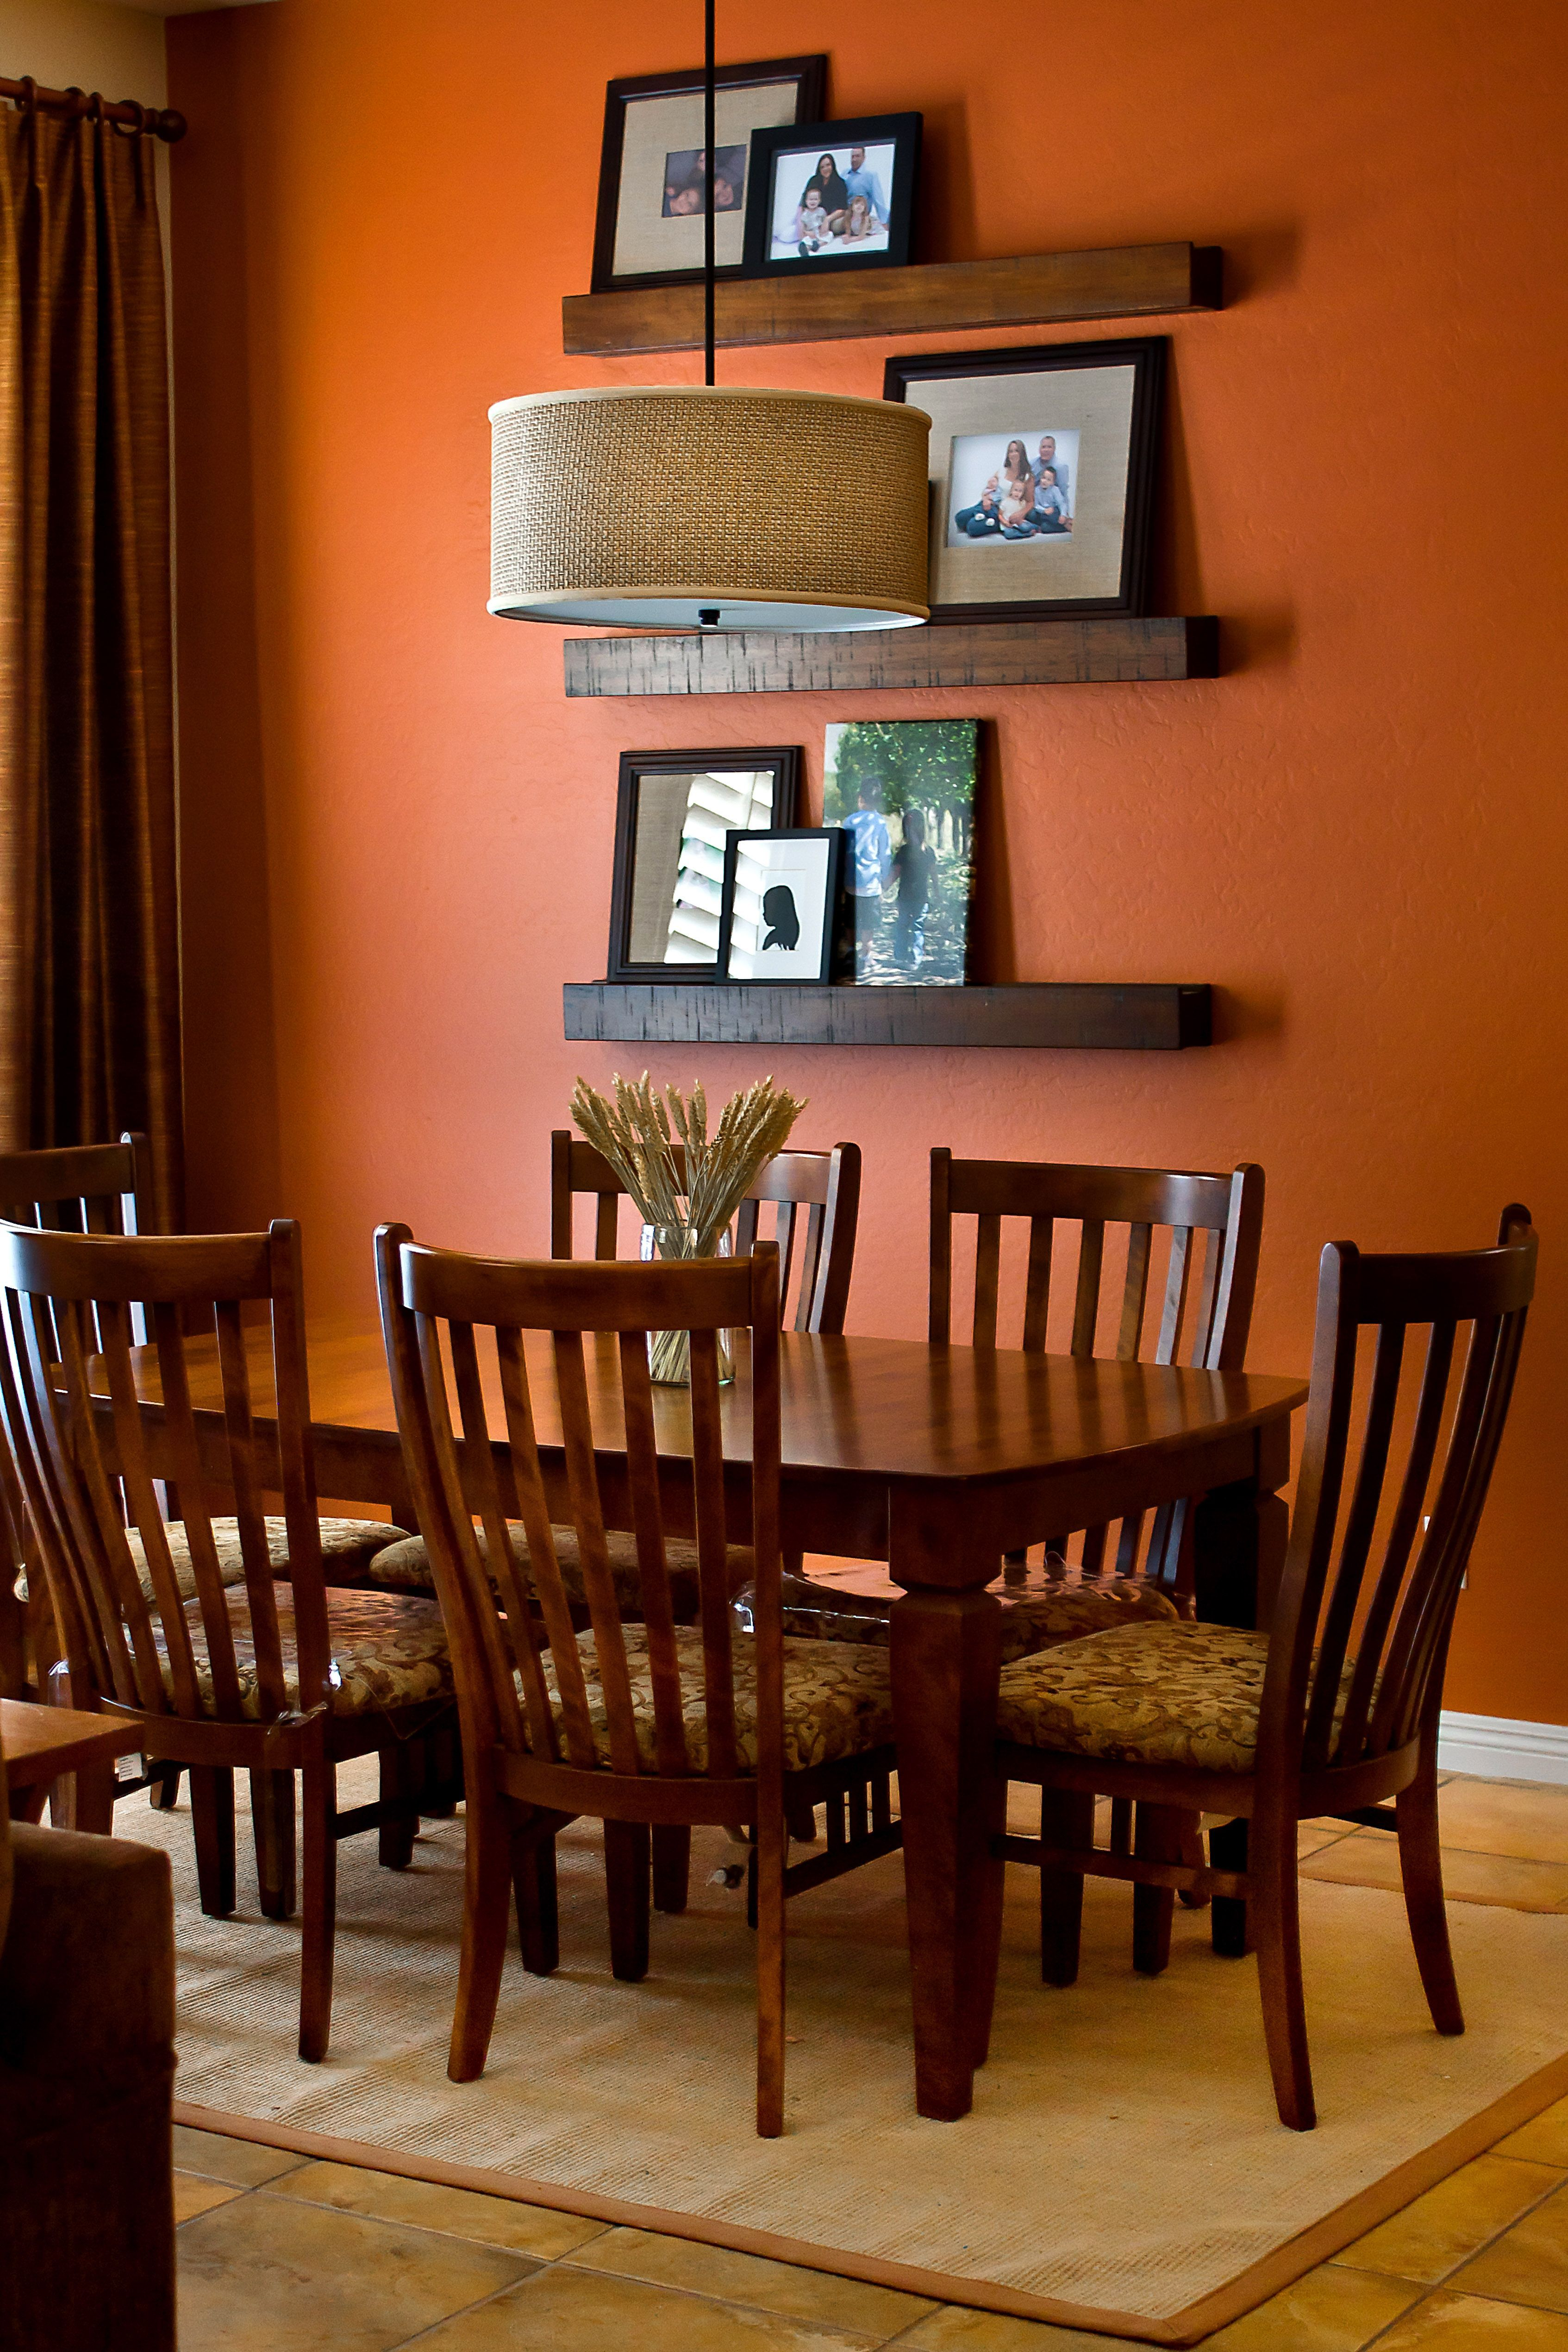 Good Idea For The Large Wall Instead Of A Mirror 3 Shelves Dark Wood To Lean Pictures On Takes U Living Room Orange Orange Dining Room Dining Room Colors